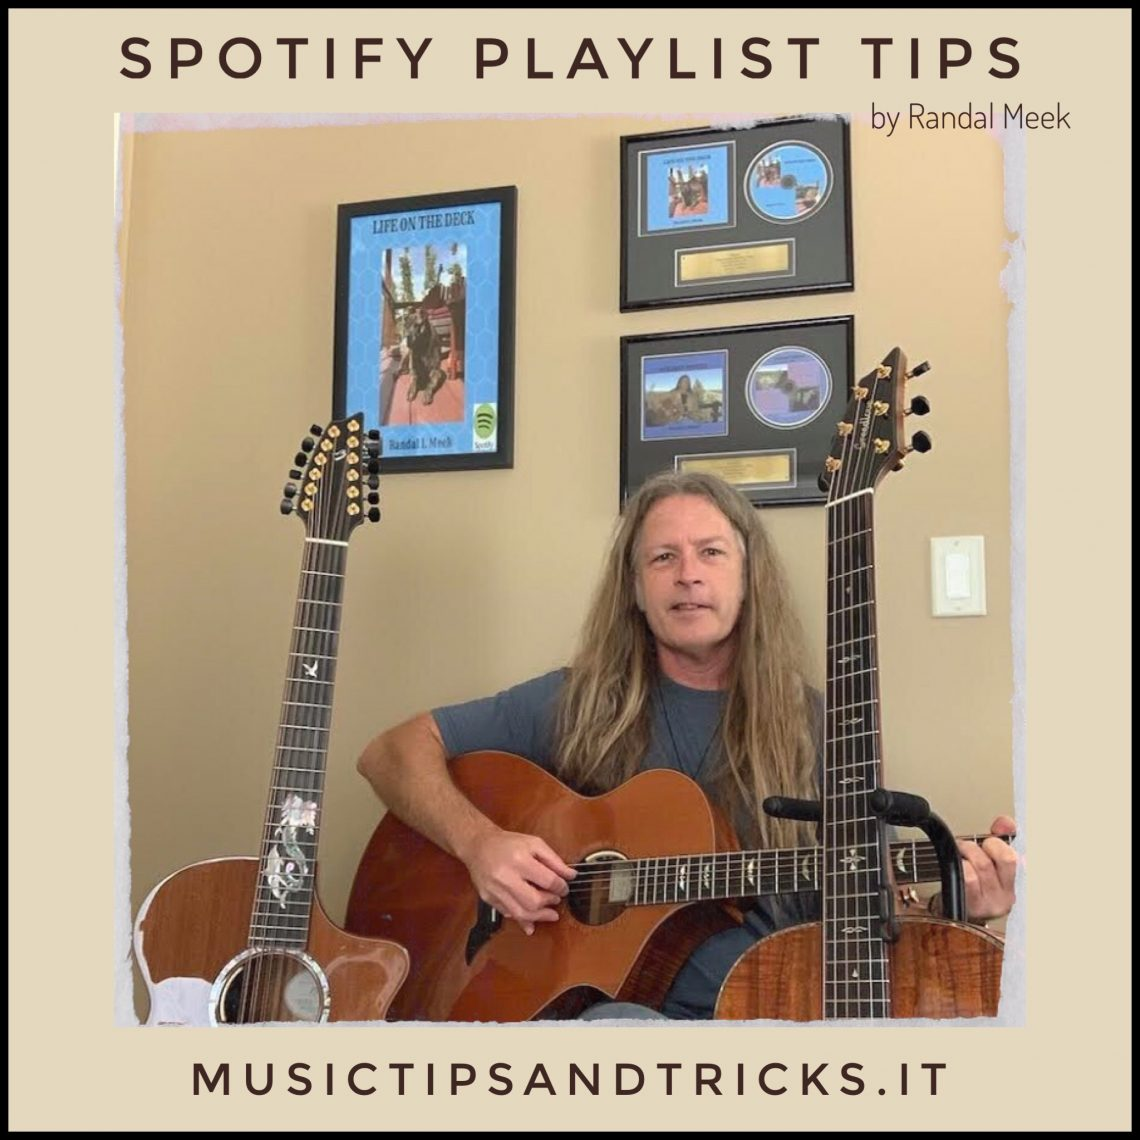 Spotify Playlist Tips by Randal Meek